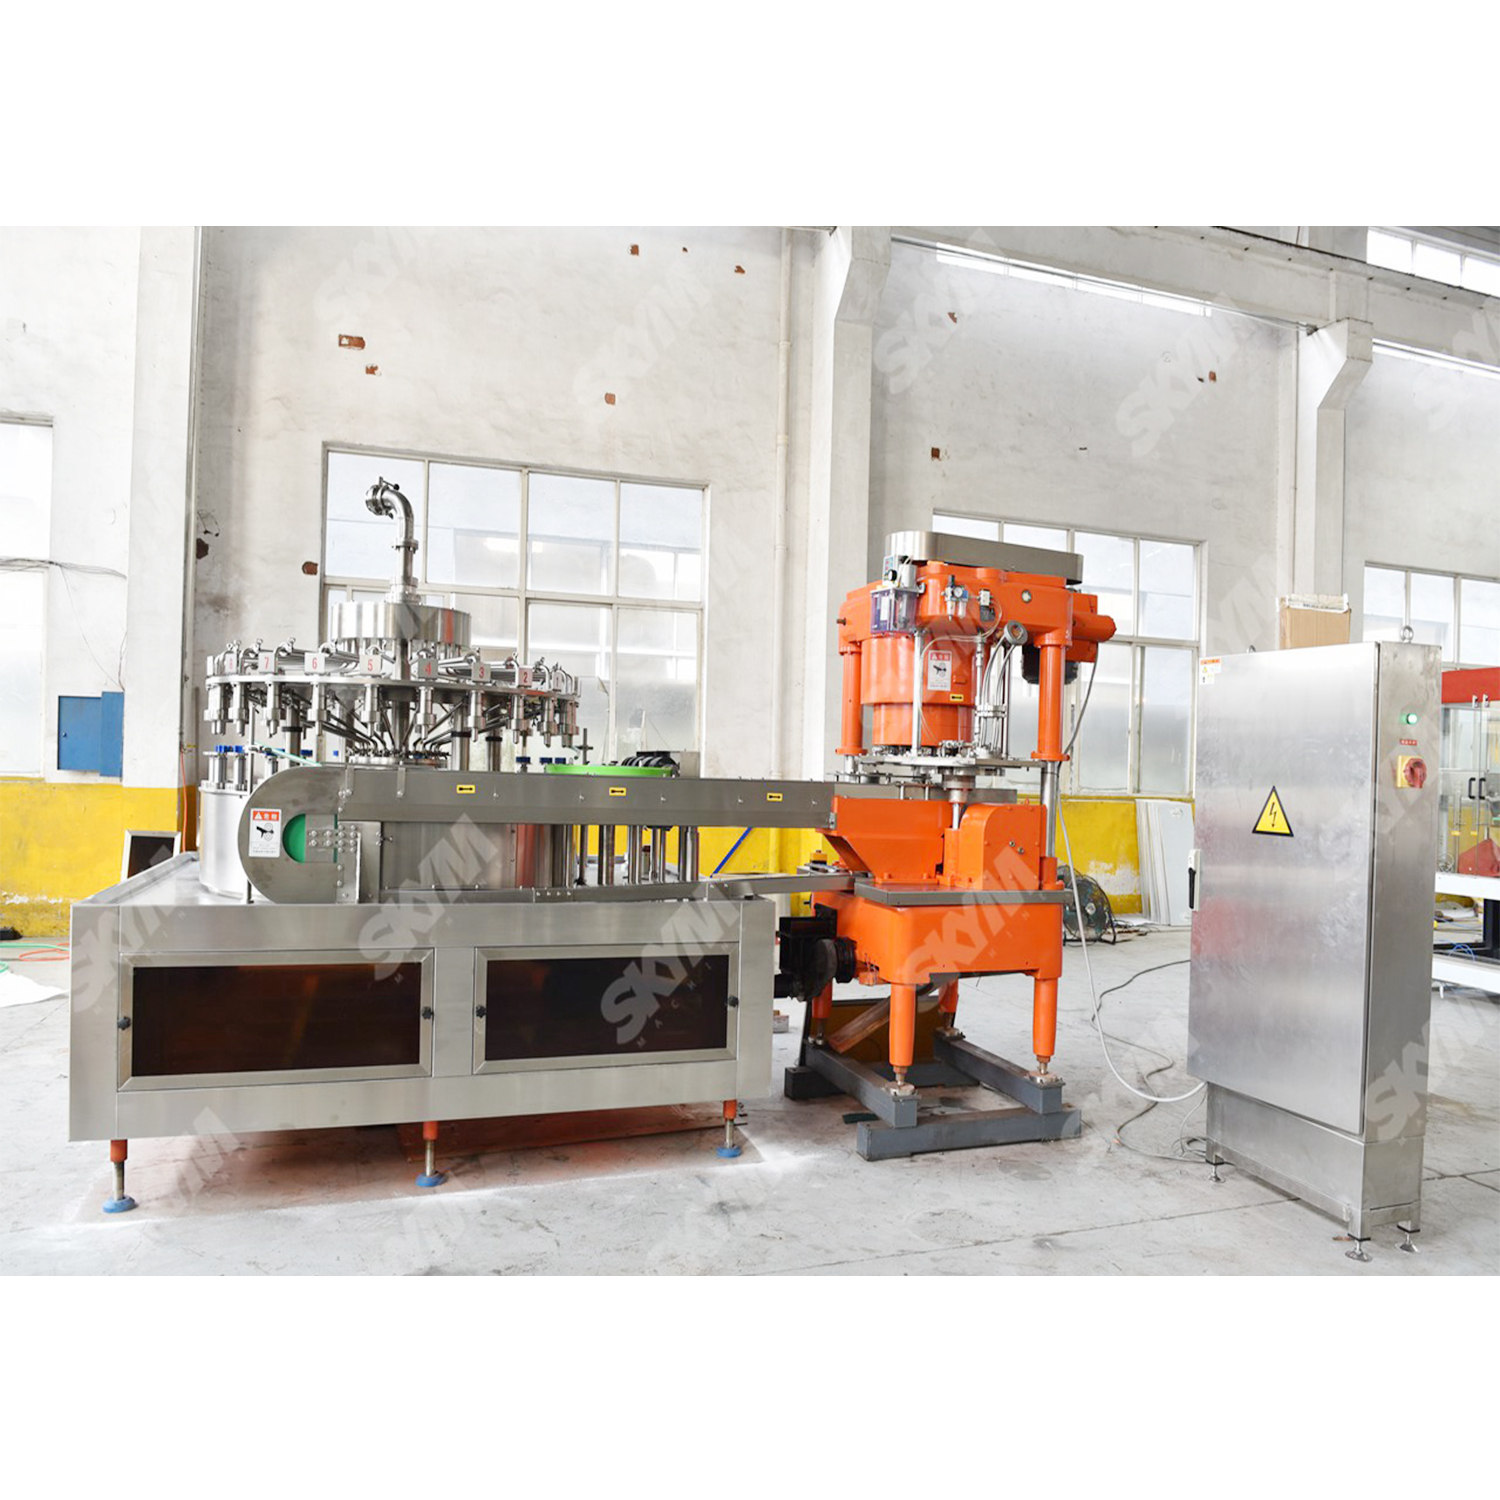 18000cans/hr Soft Drink Aluminum Canning Production Line